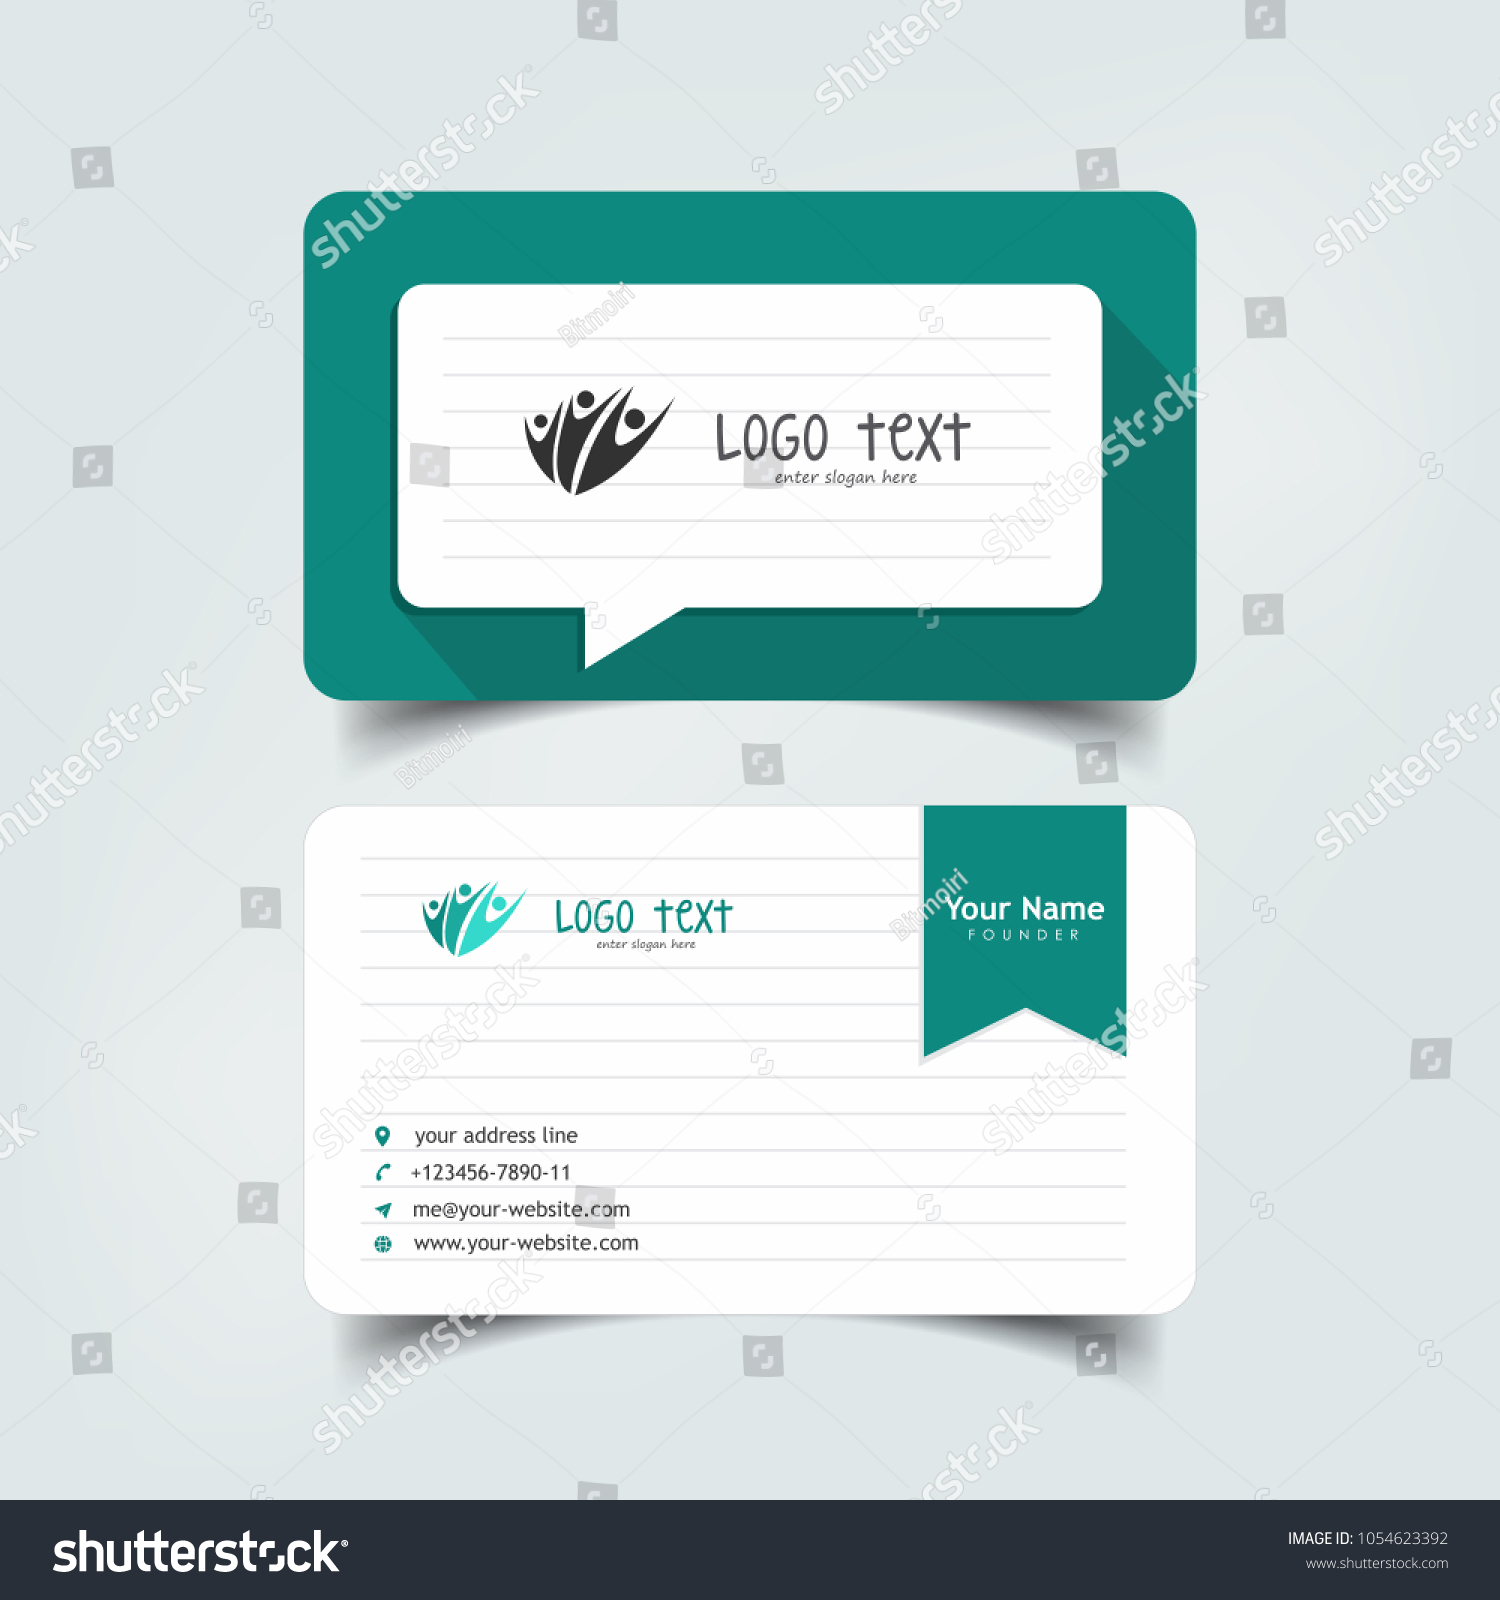 Simple elegant business card templates paper stock vector royalty simple elegant business card templates with paper buzz styles identity card templates fbccfo Gallery